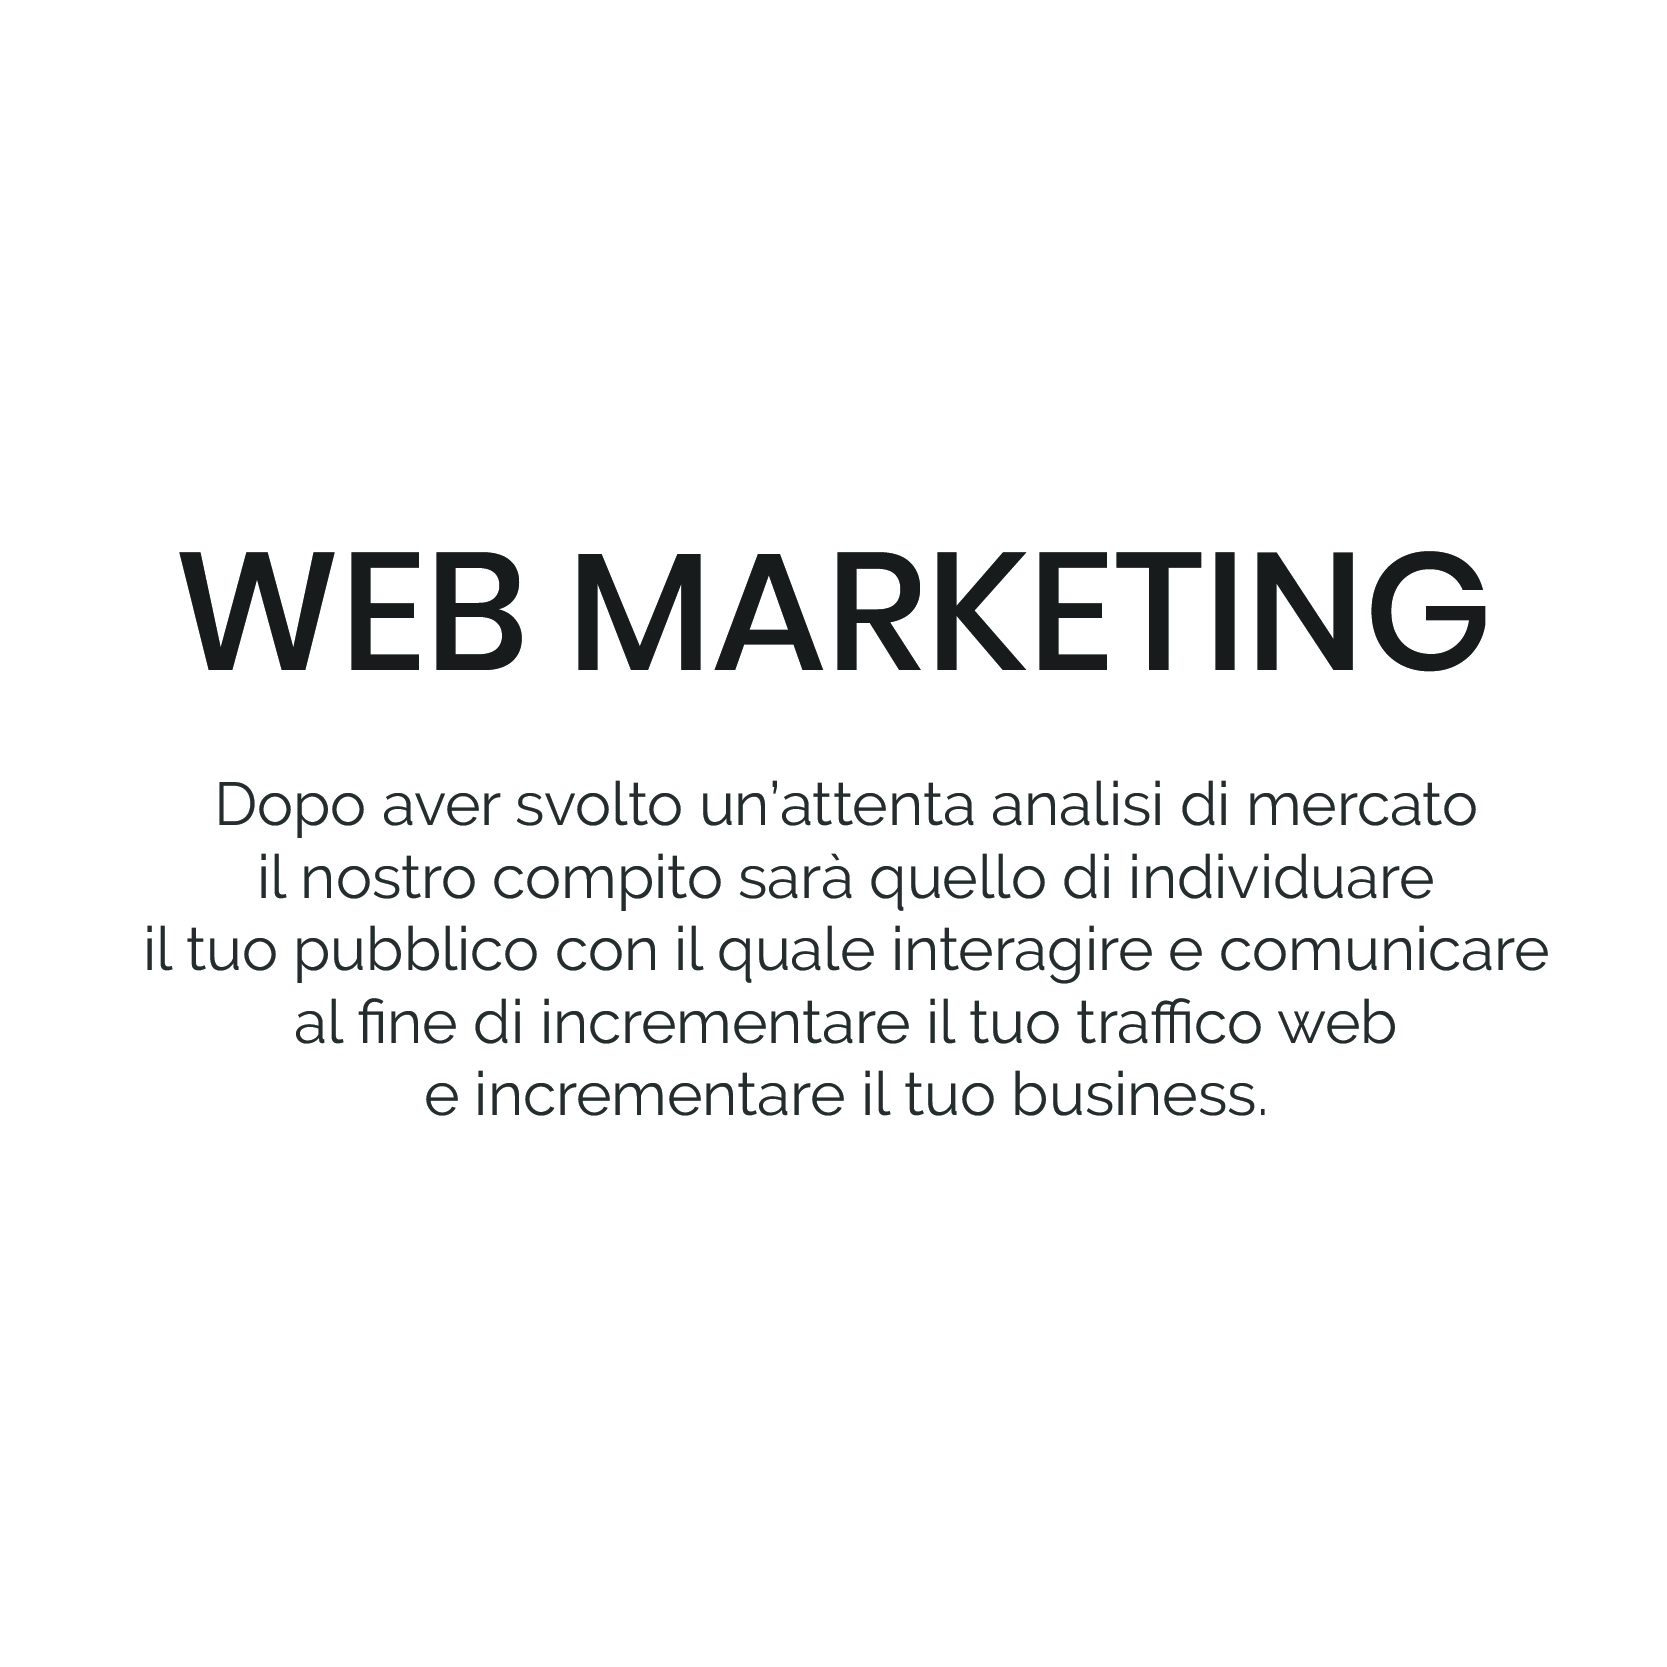 web_marketing